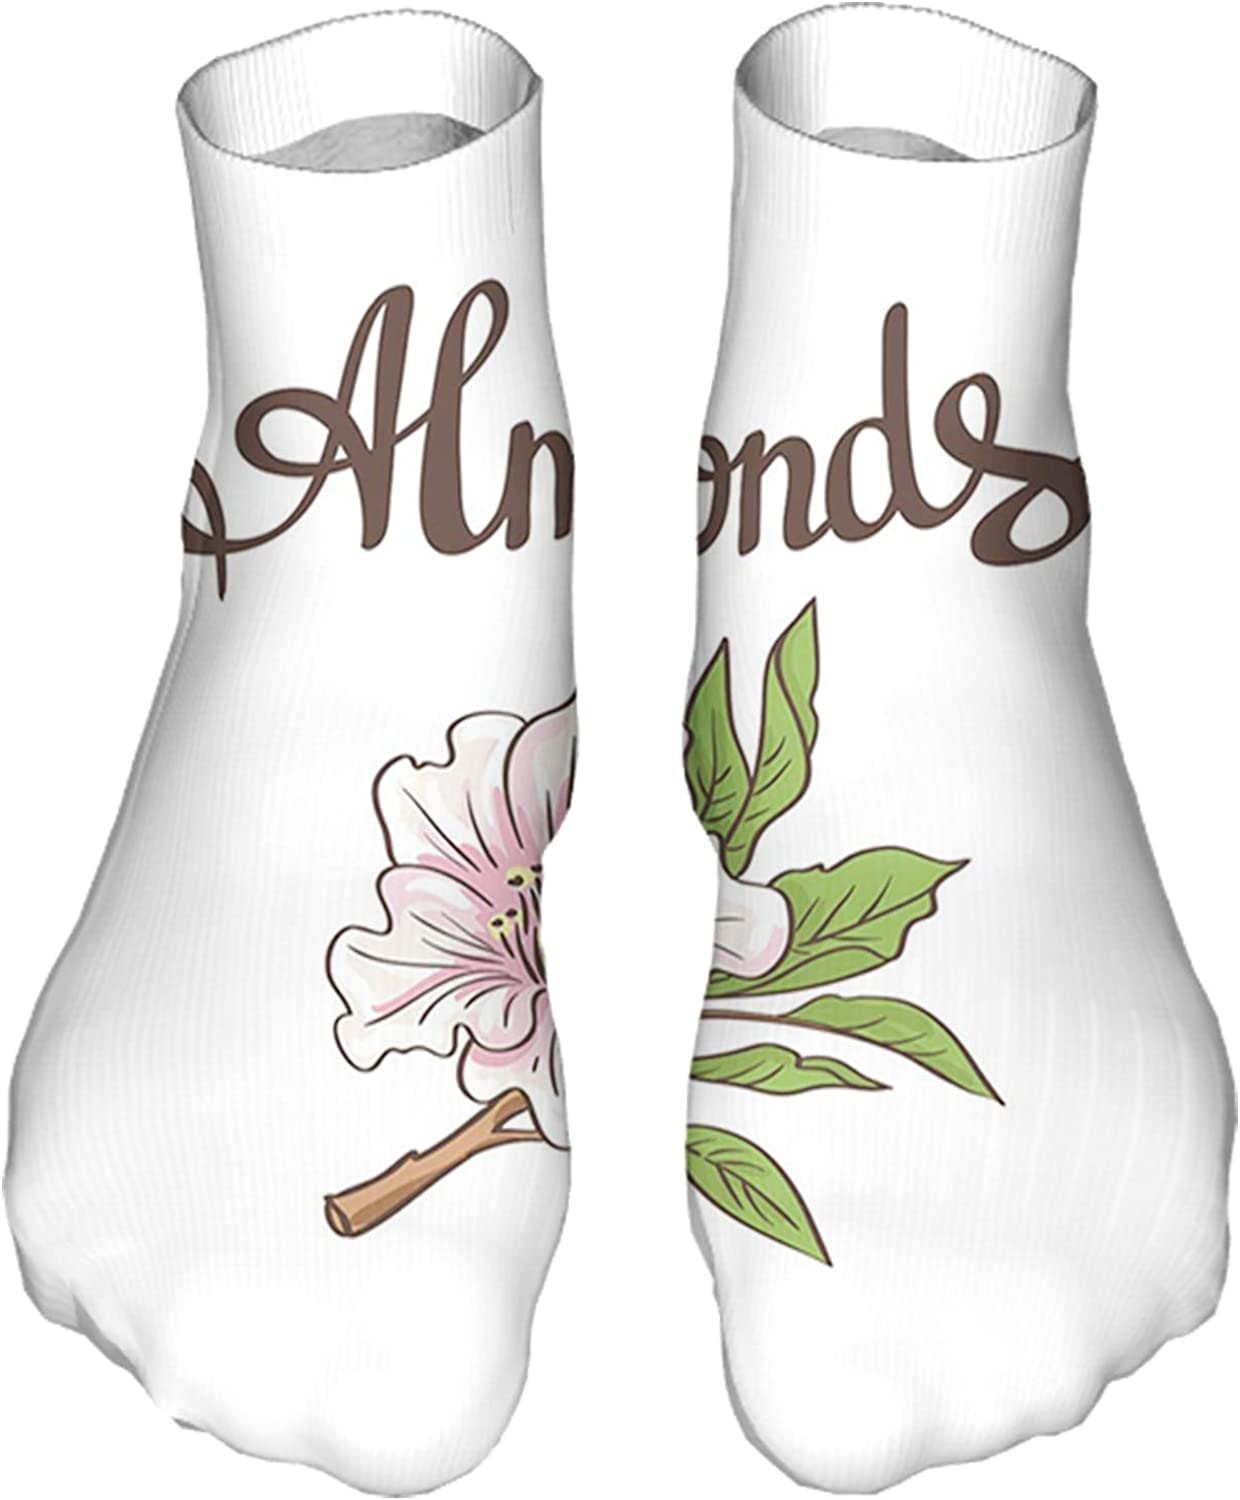 Men's and Women's Fun Socks Printed Cool Novelty Funny Socks,Hand Drawn Almond Blossom on a Branch with Leaves Garden